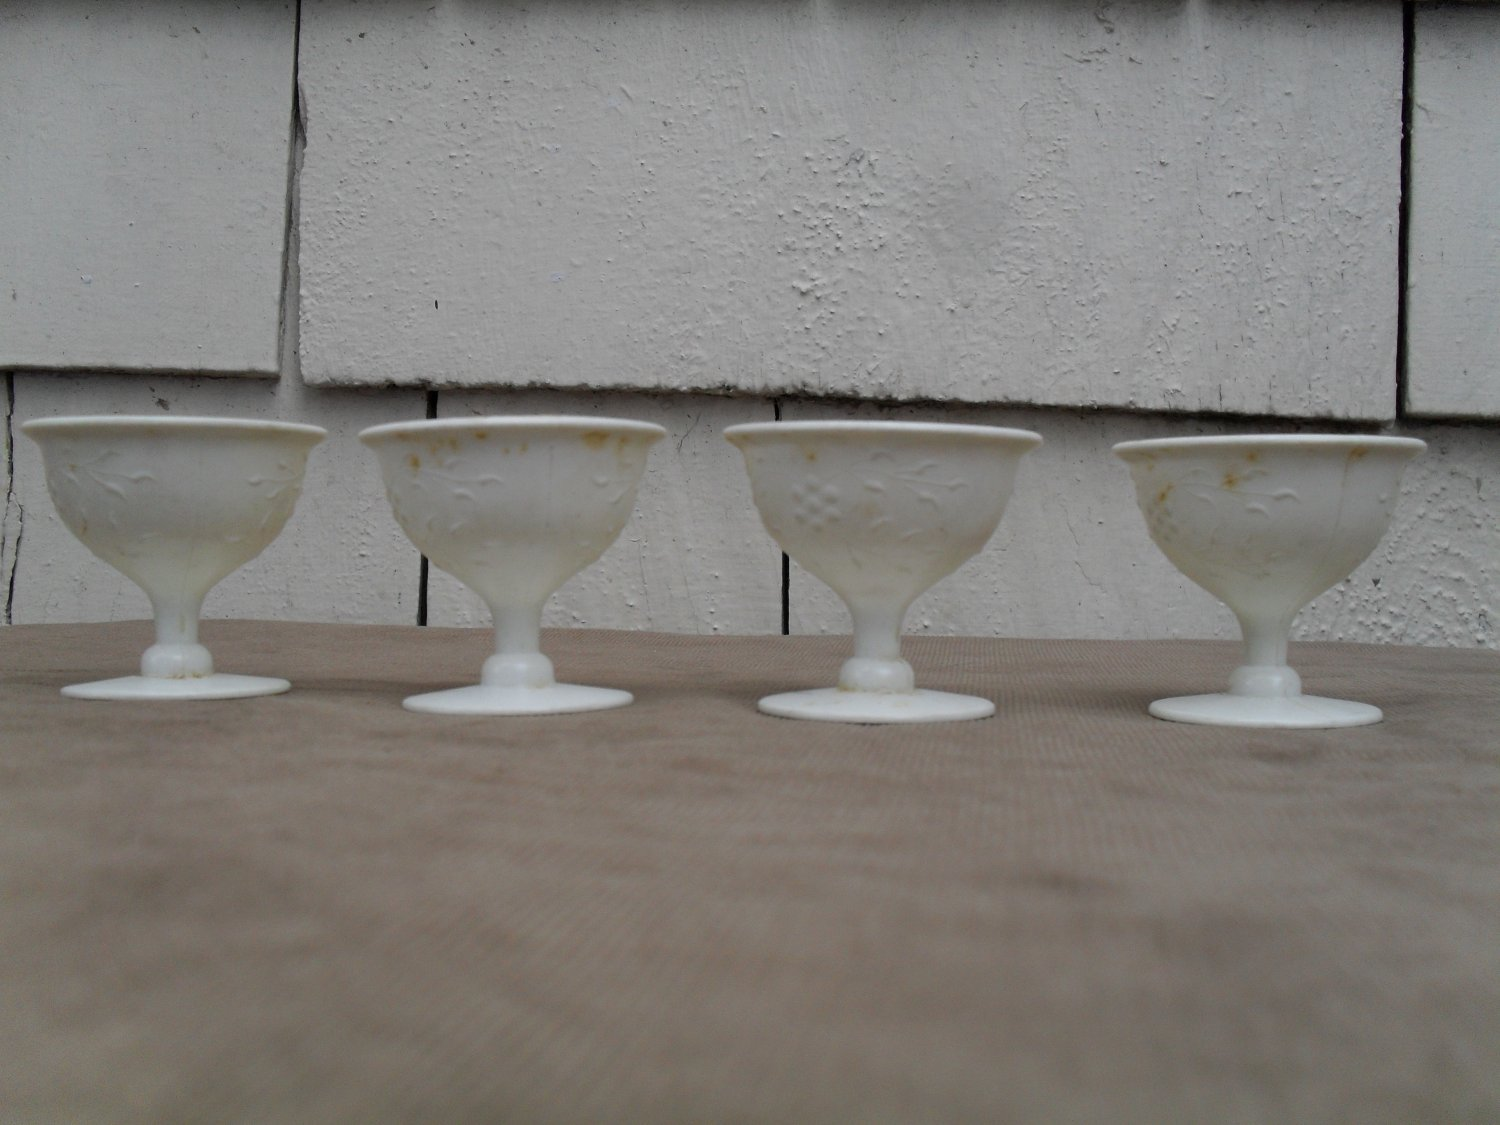 Set of 4 Vintage Plastic Fancy Cups Toy Dishes